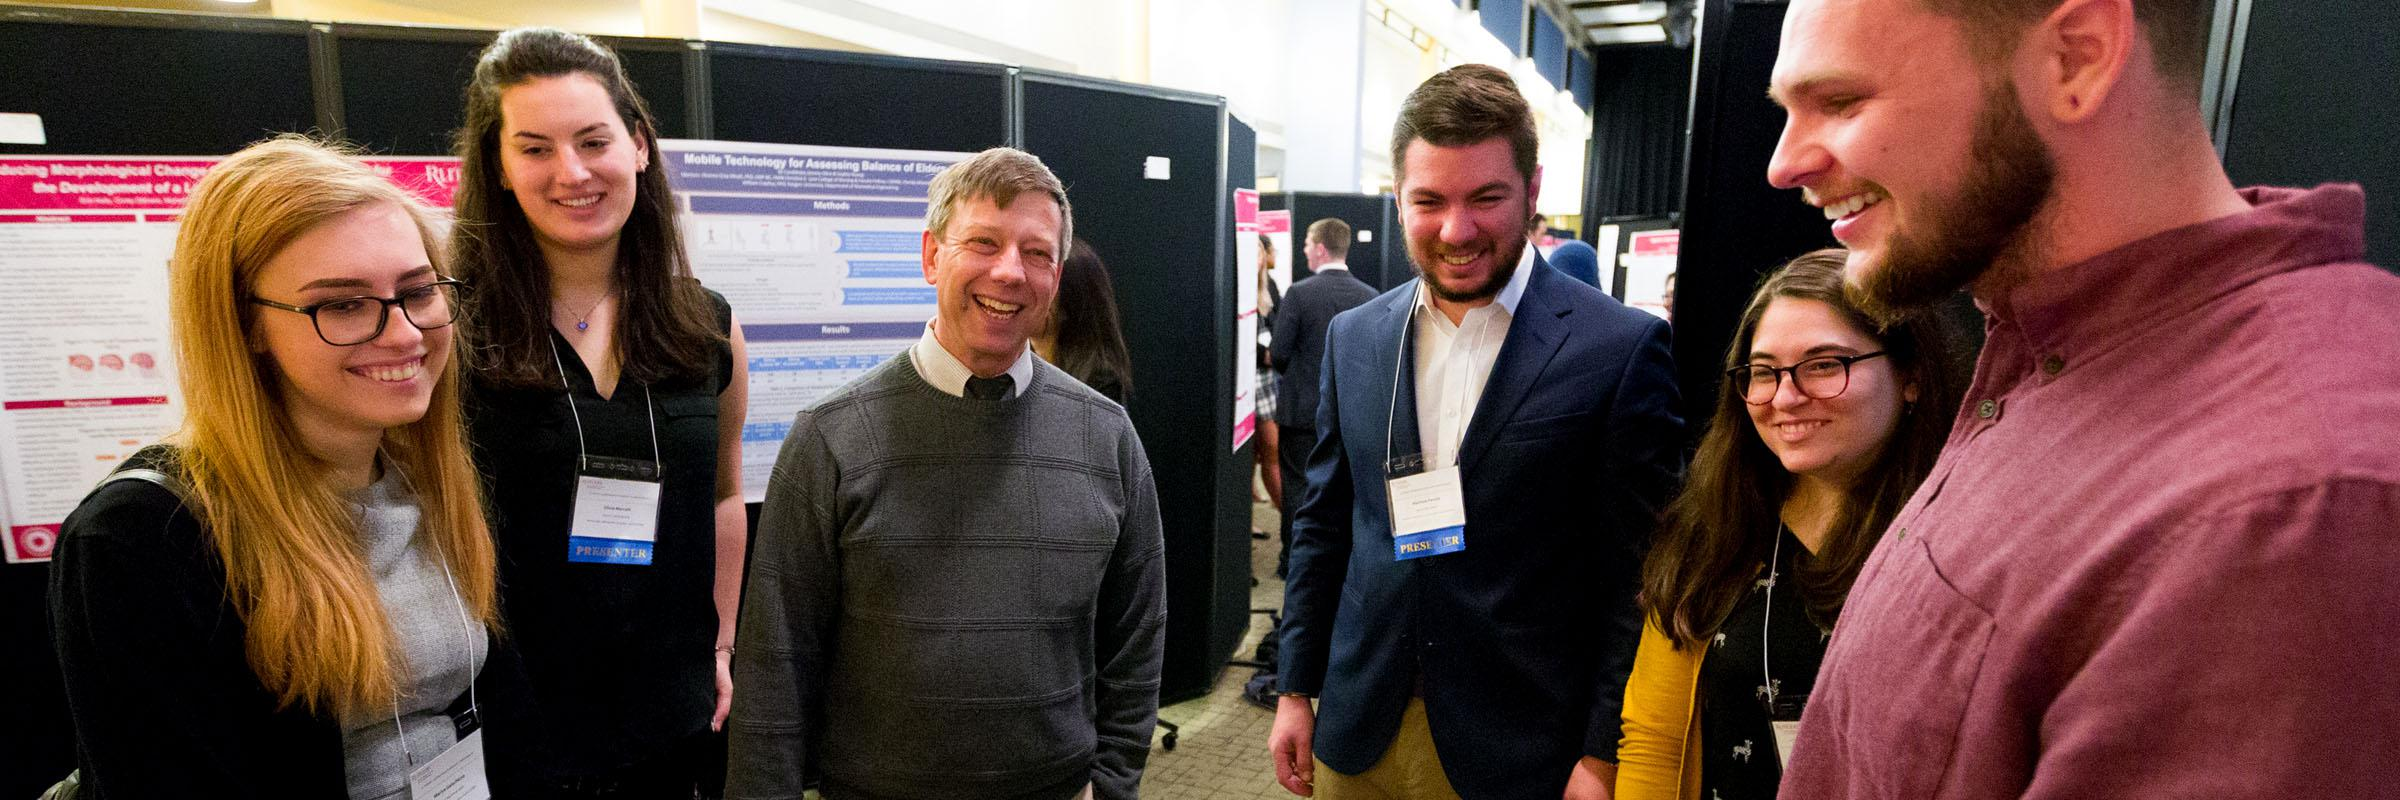 Presenters, guests, and Aresty Director Vadim Levin discussing poster presentations at the Annual 2018 Symposium.